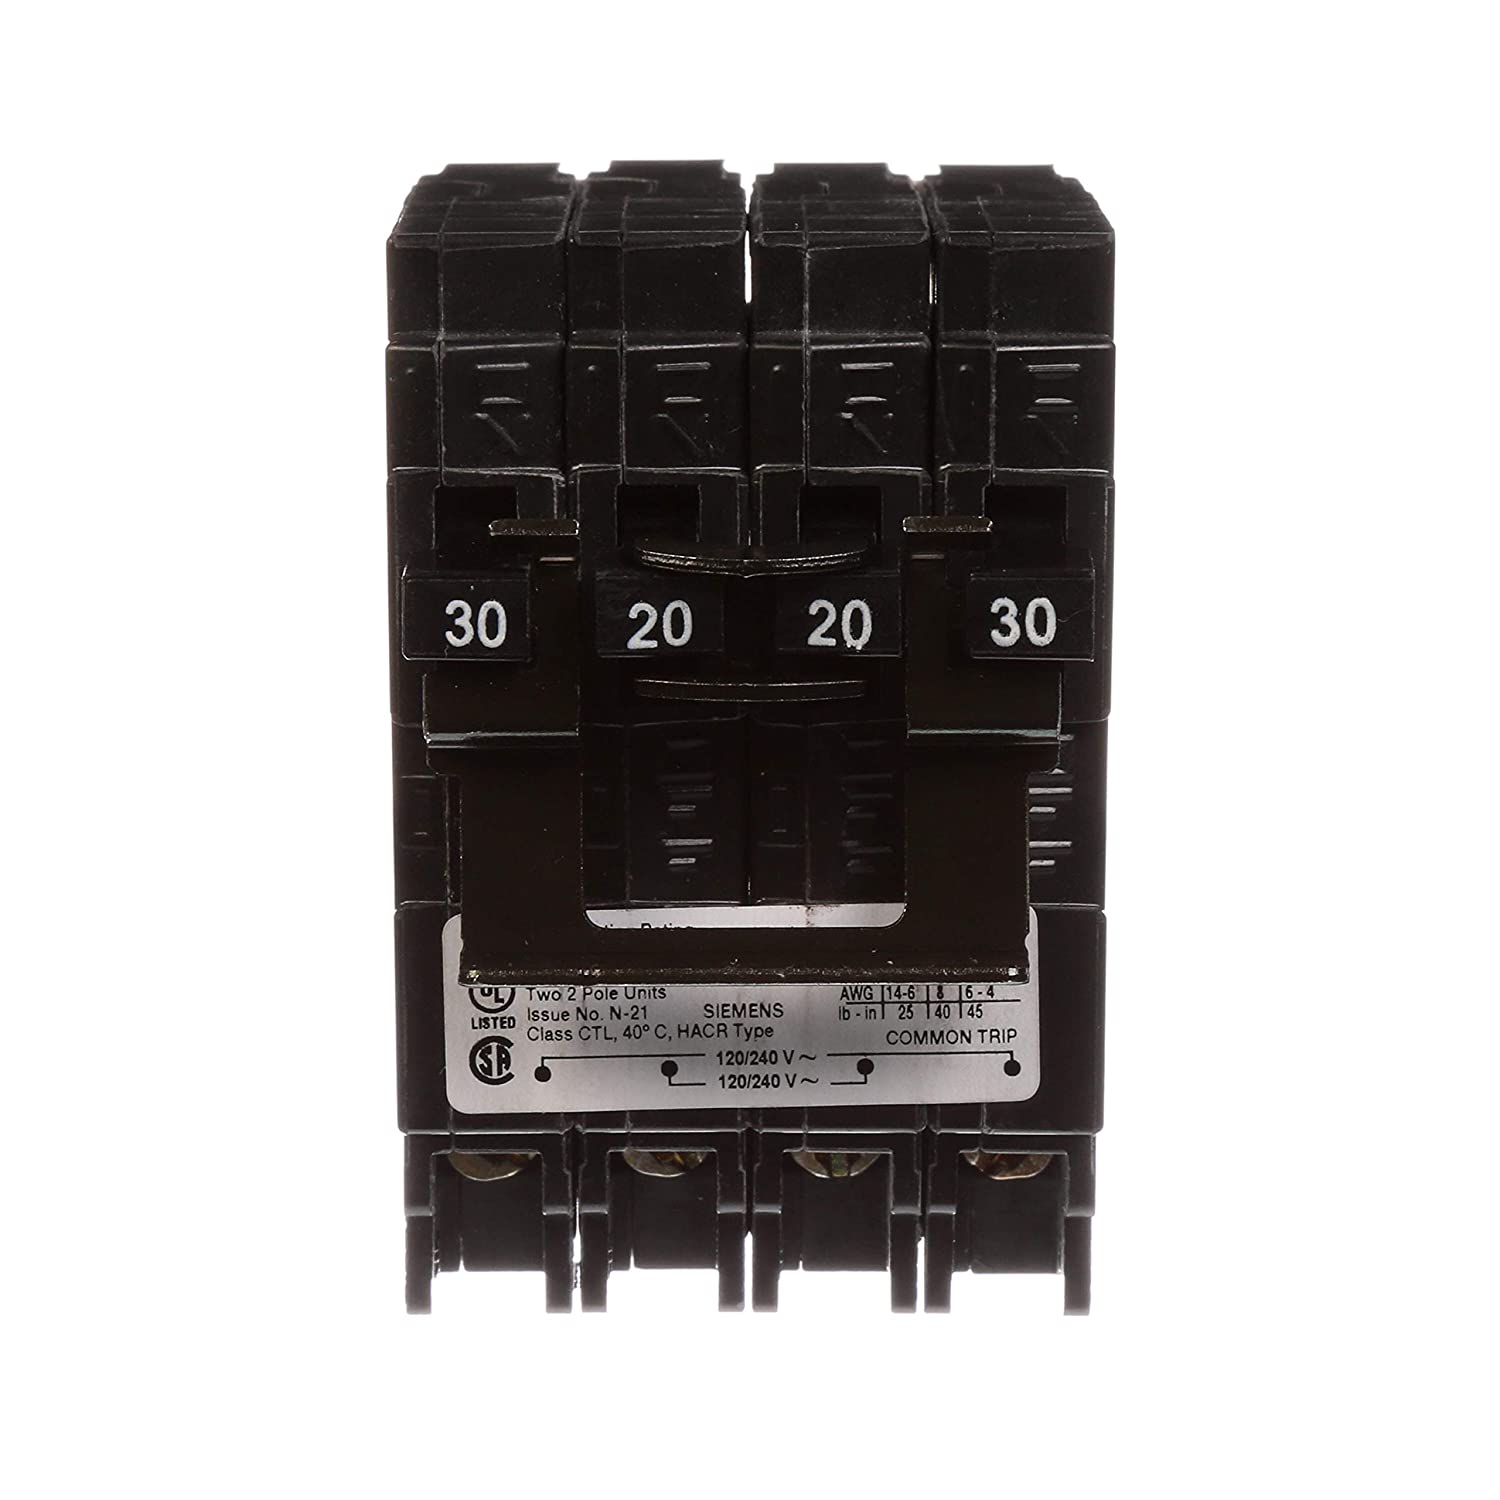 30 Amp Breaker Wiring Diagram Of A Show Get Free Image About Wiring